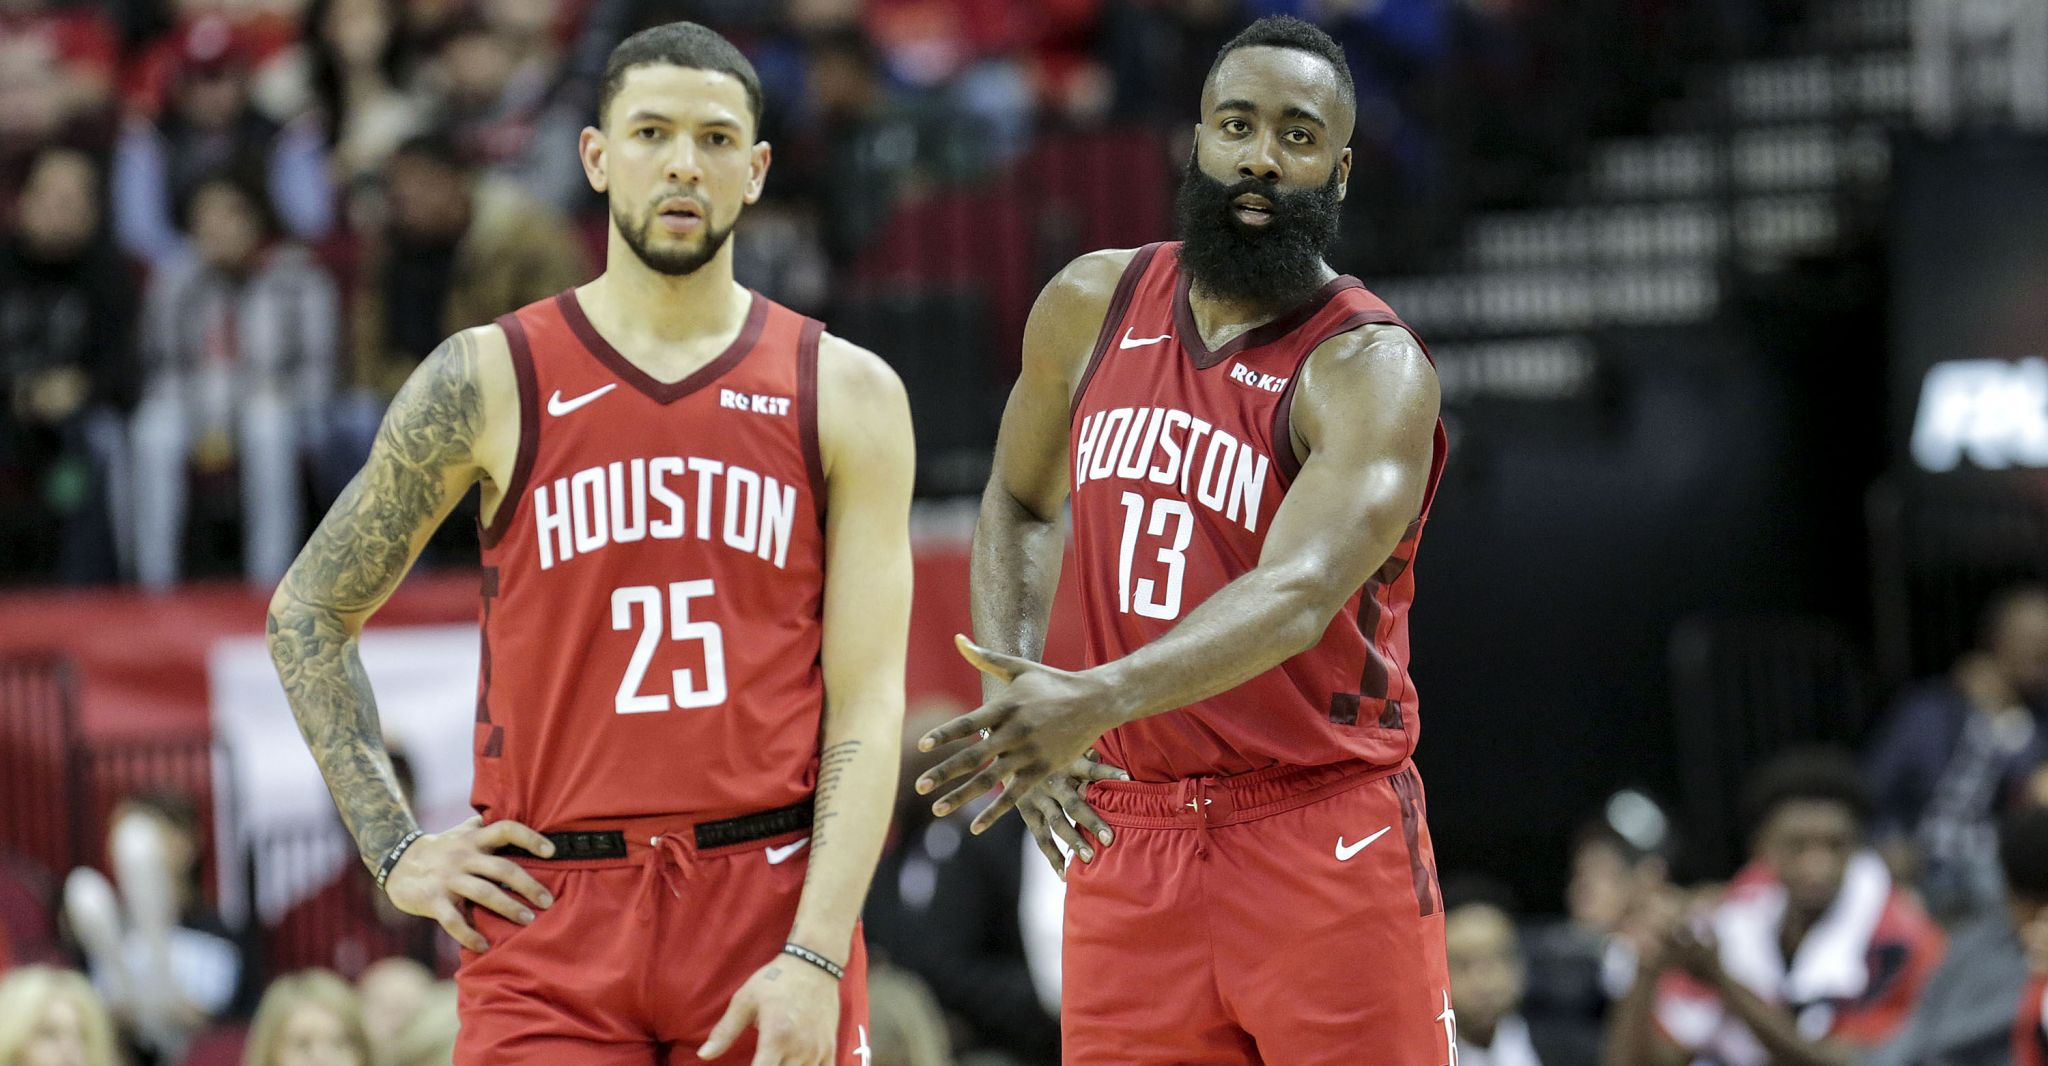 Rockets guard Austin Rivers ruled out for Game 1 vs. Warriors with illness